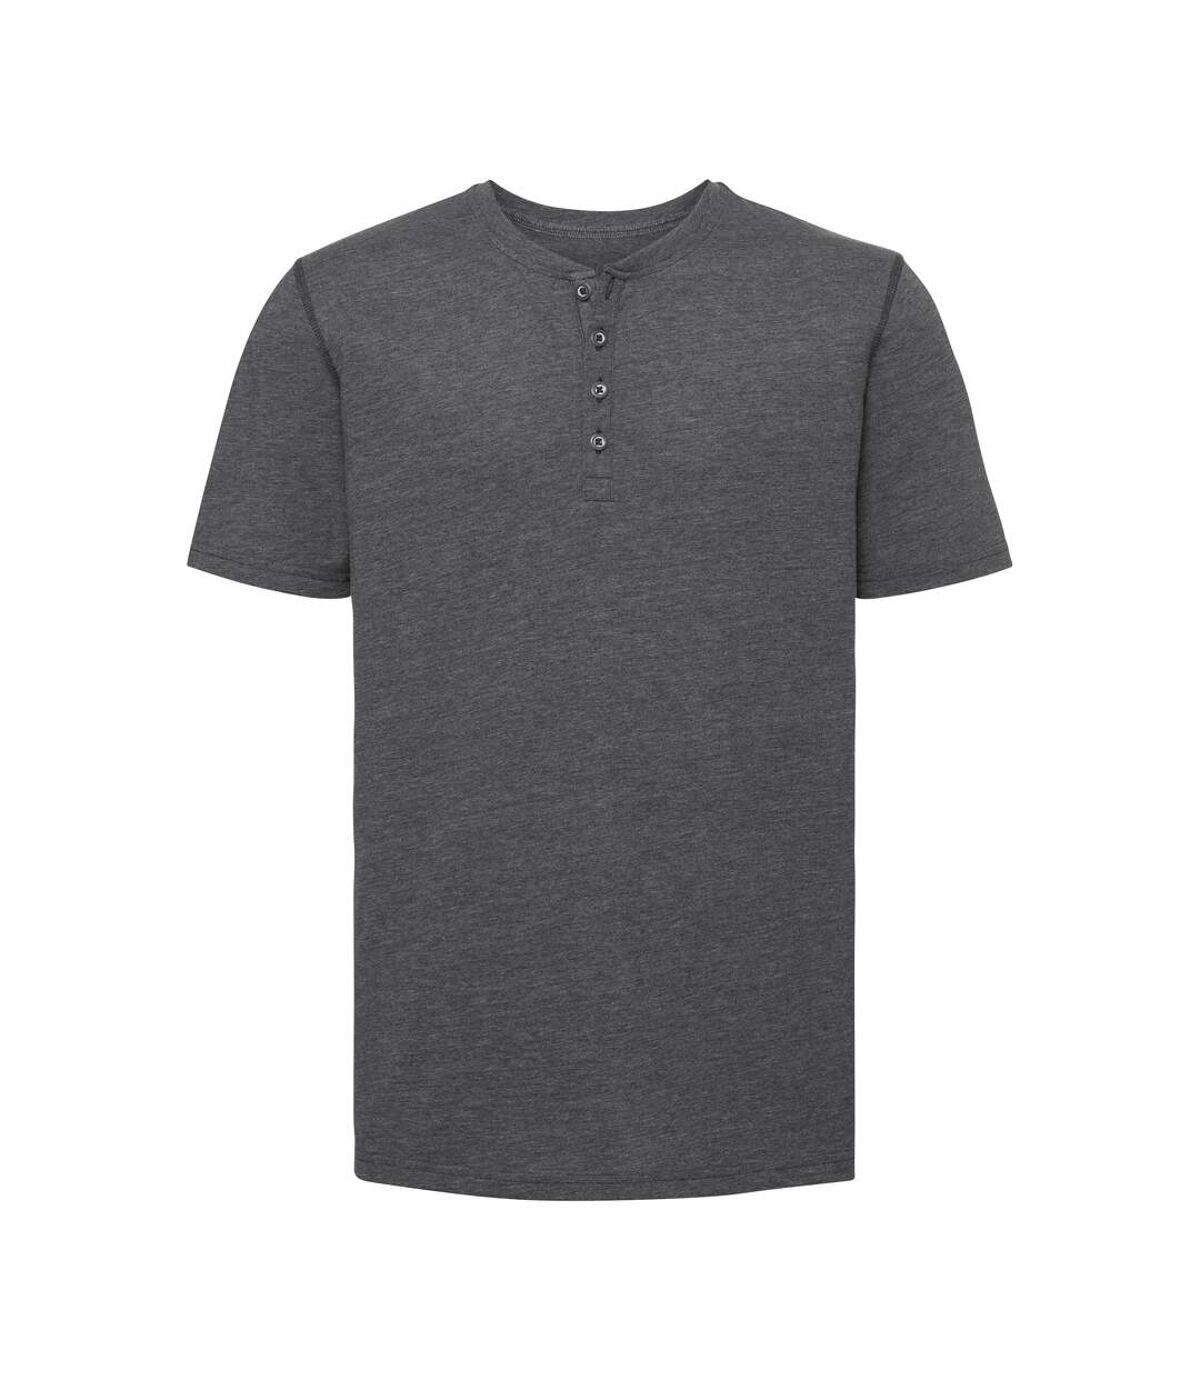 Russell - T-shirt manches courtes HENLEY - Homme (Gris chiné) - UTPC3636